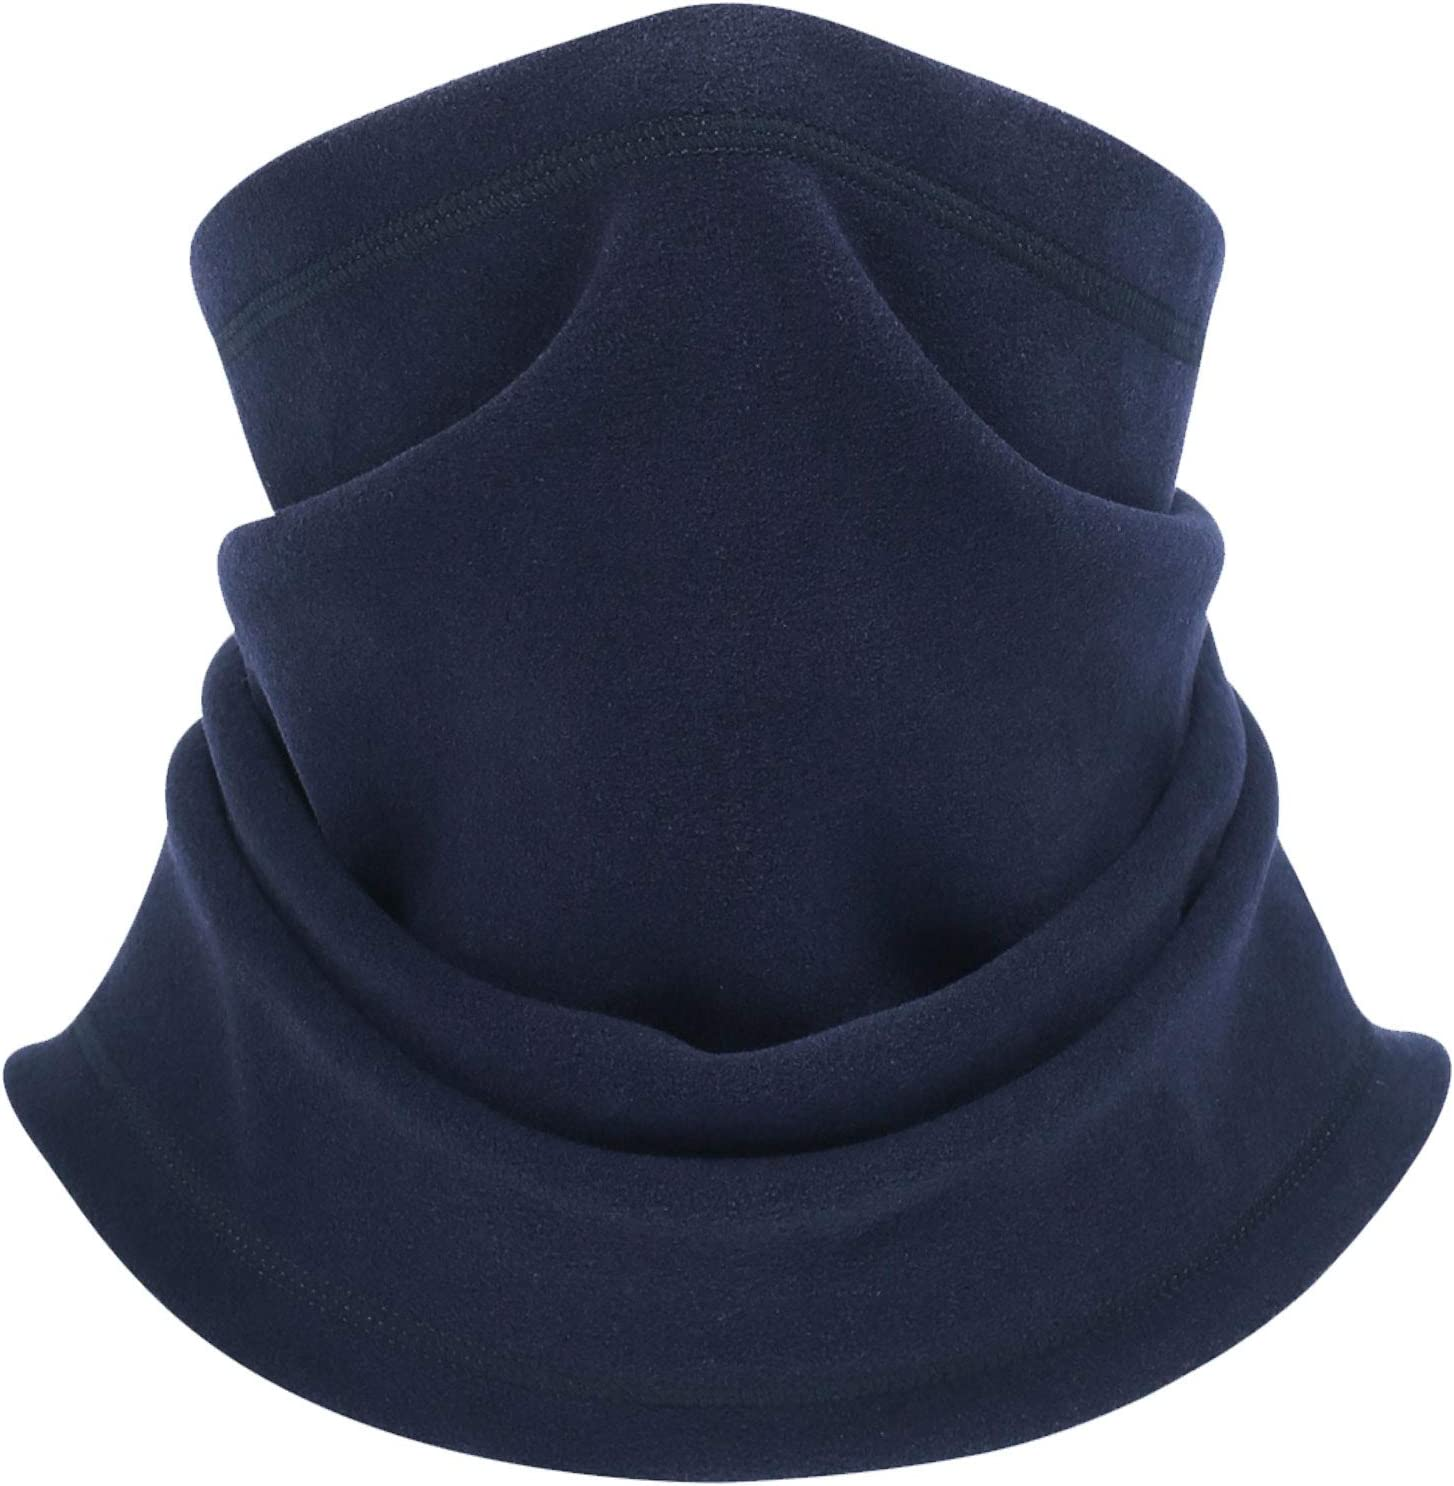 NTBOKW Neck Gaiter Scarf Face Mask Warmer for Winter Cold Weather Windproof Mask Men Women